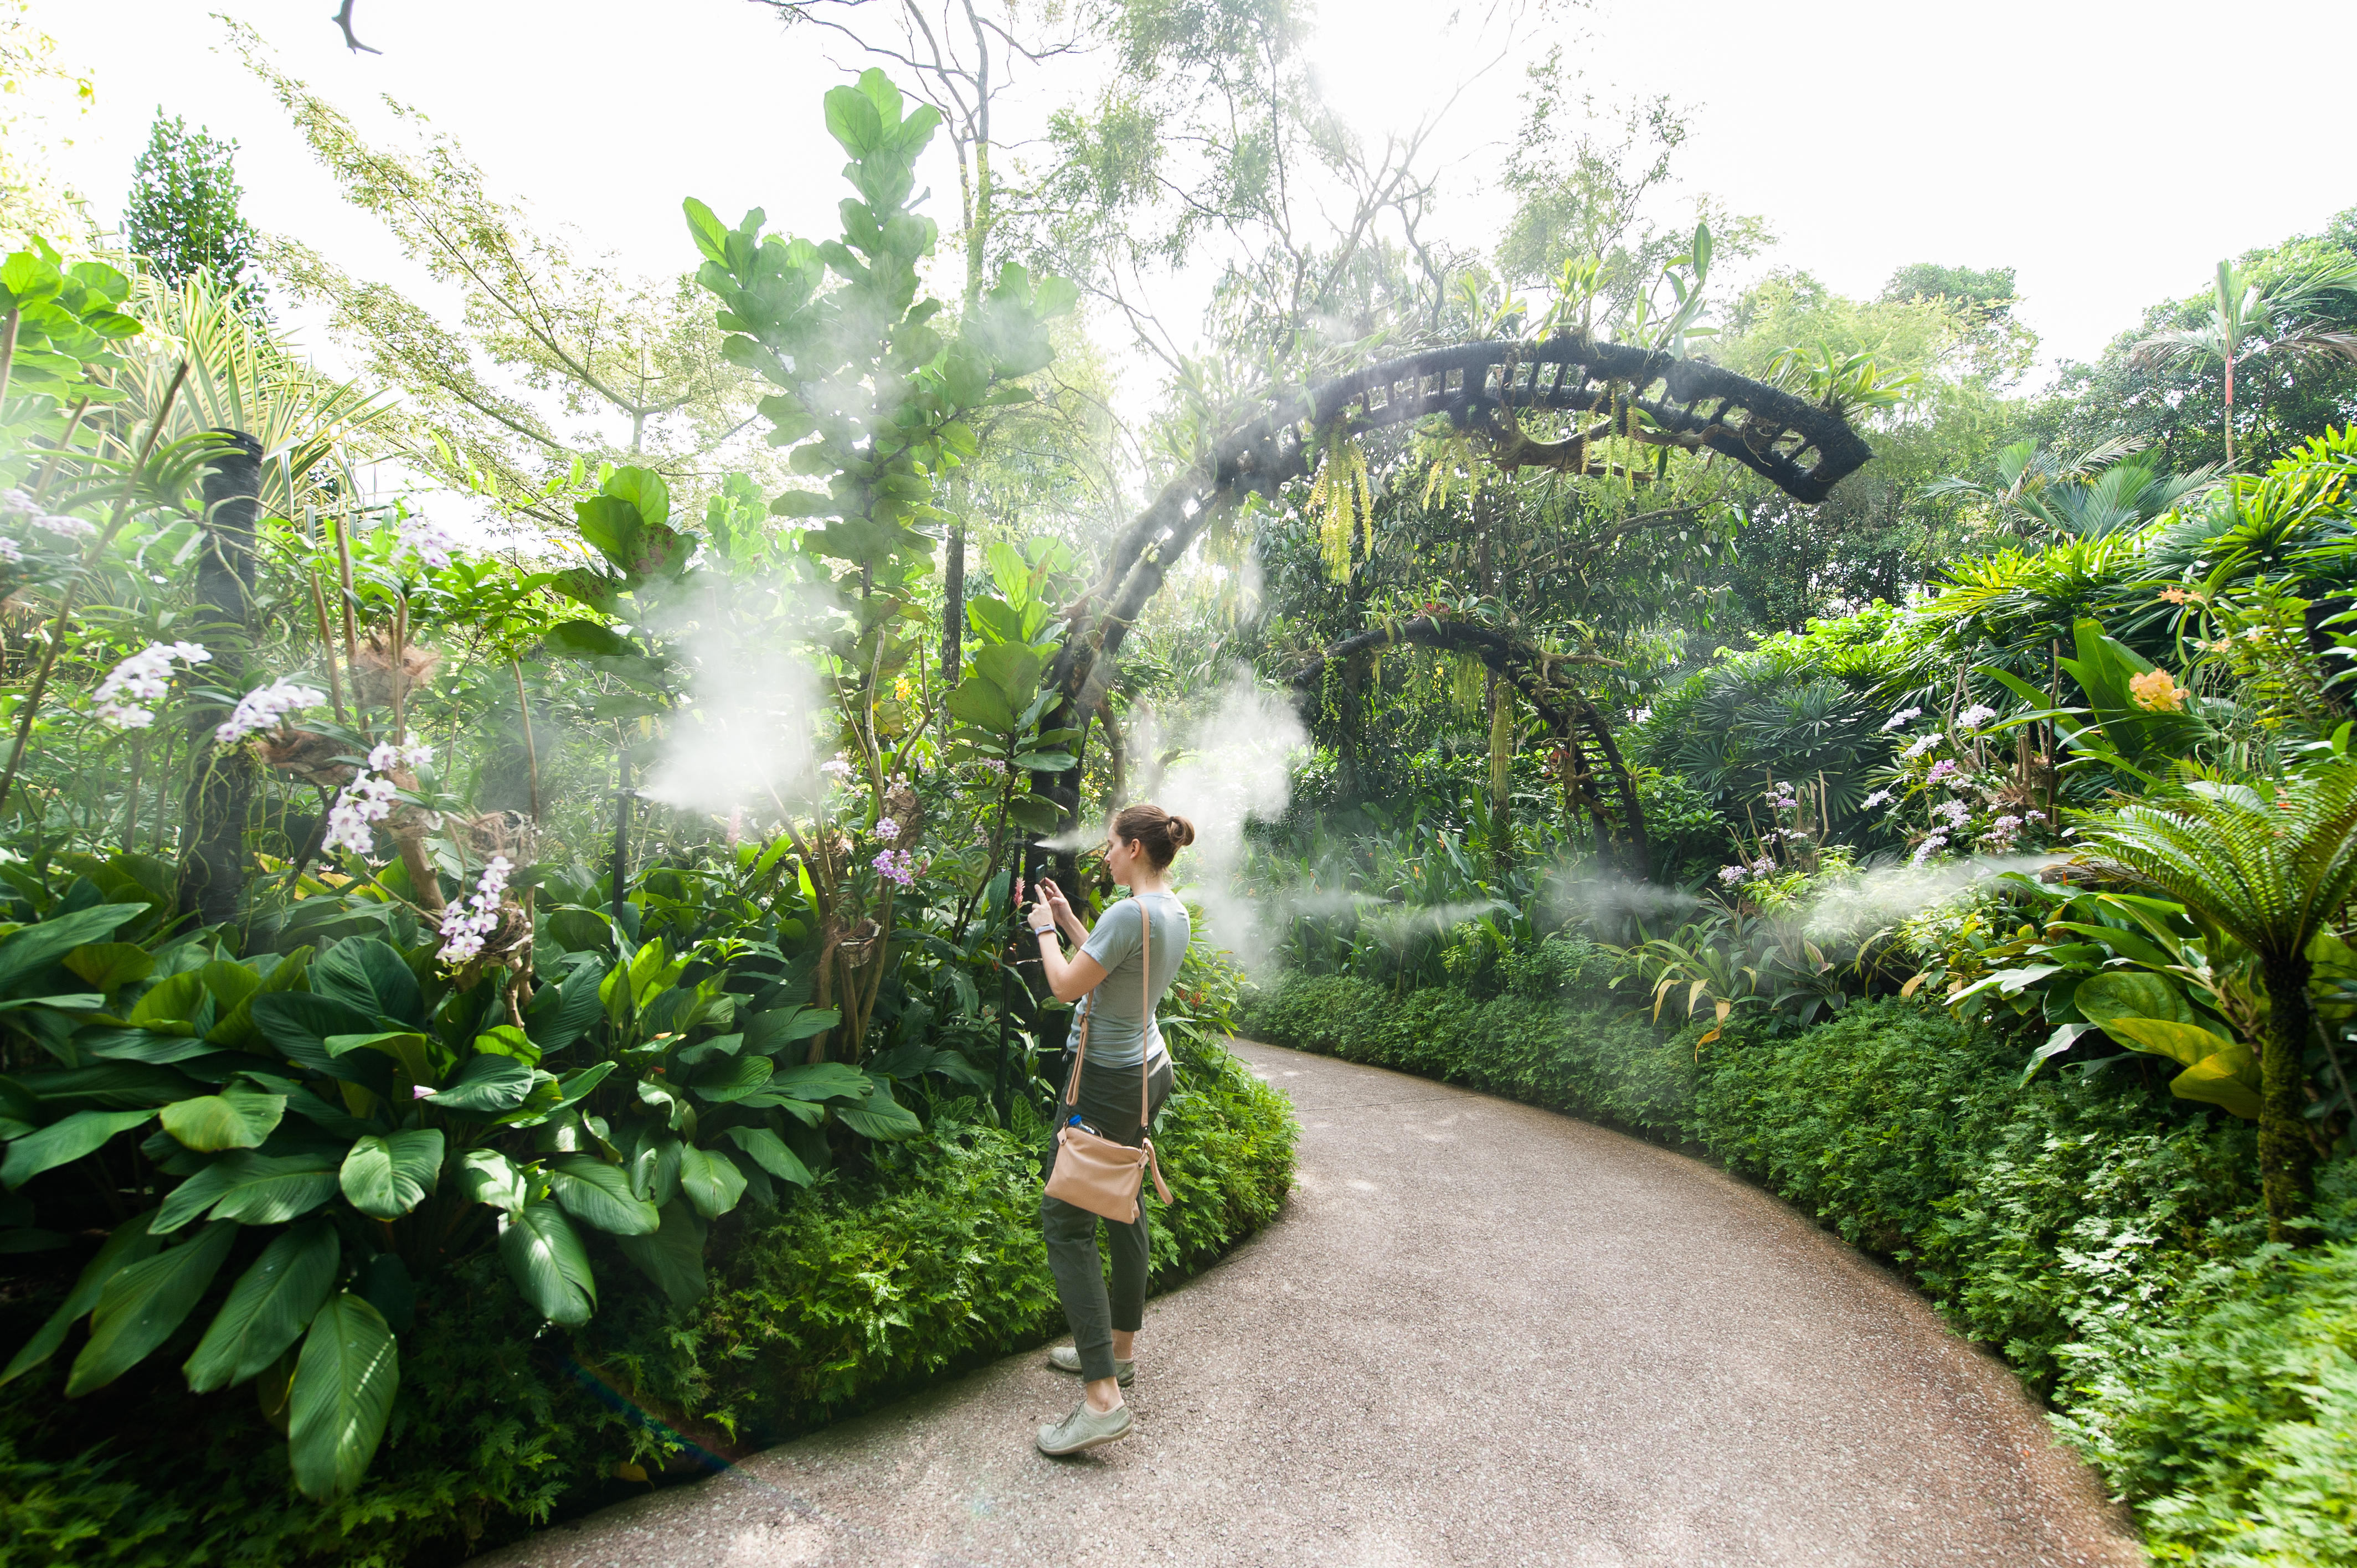 Mist Garden in the National Orchid Garden